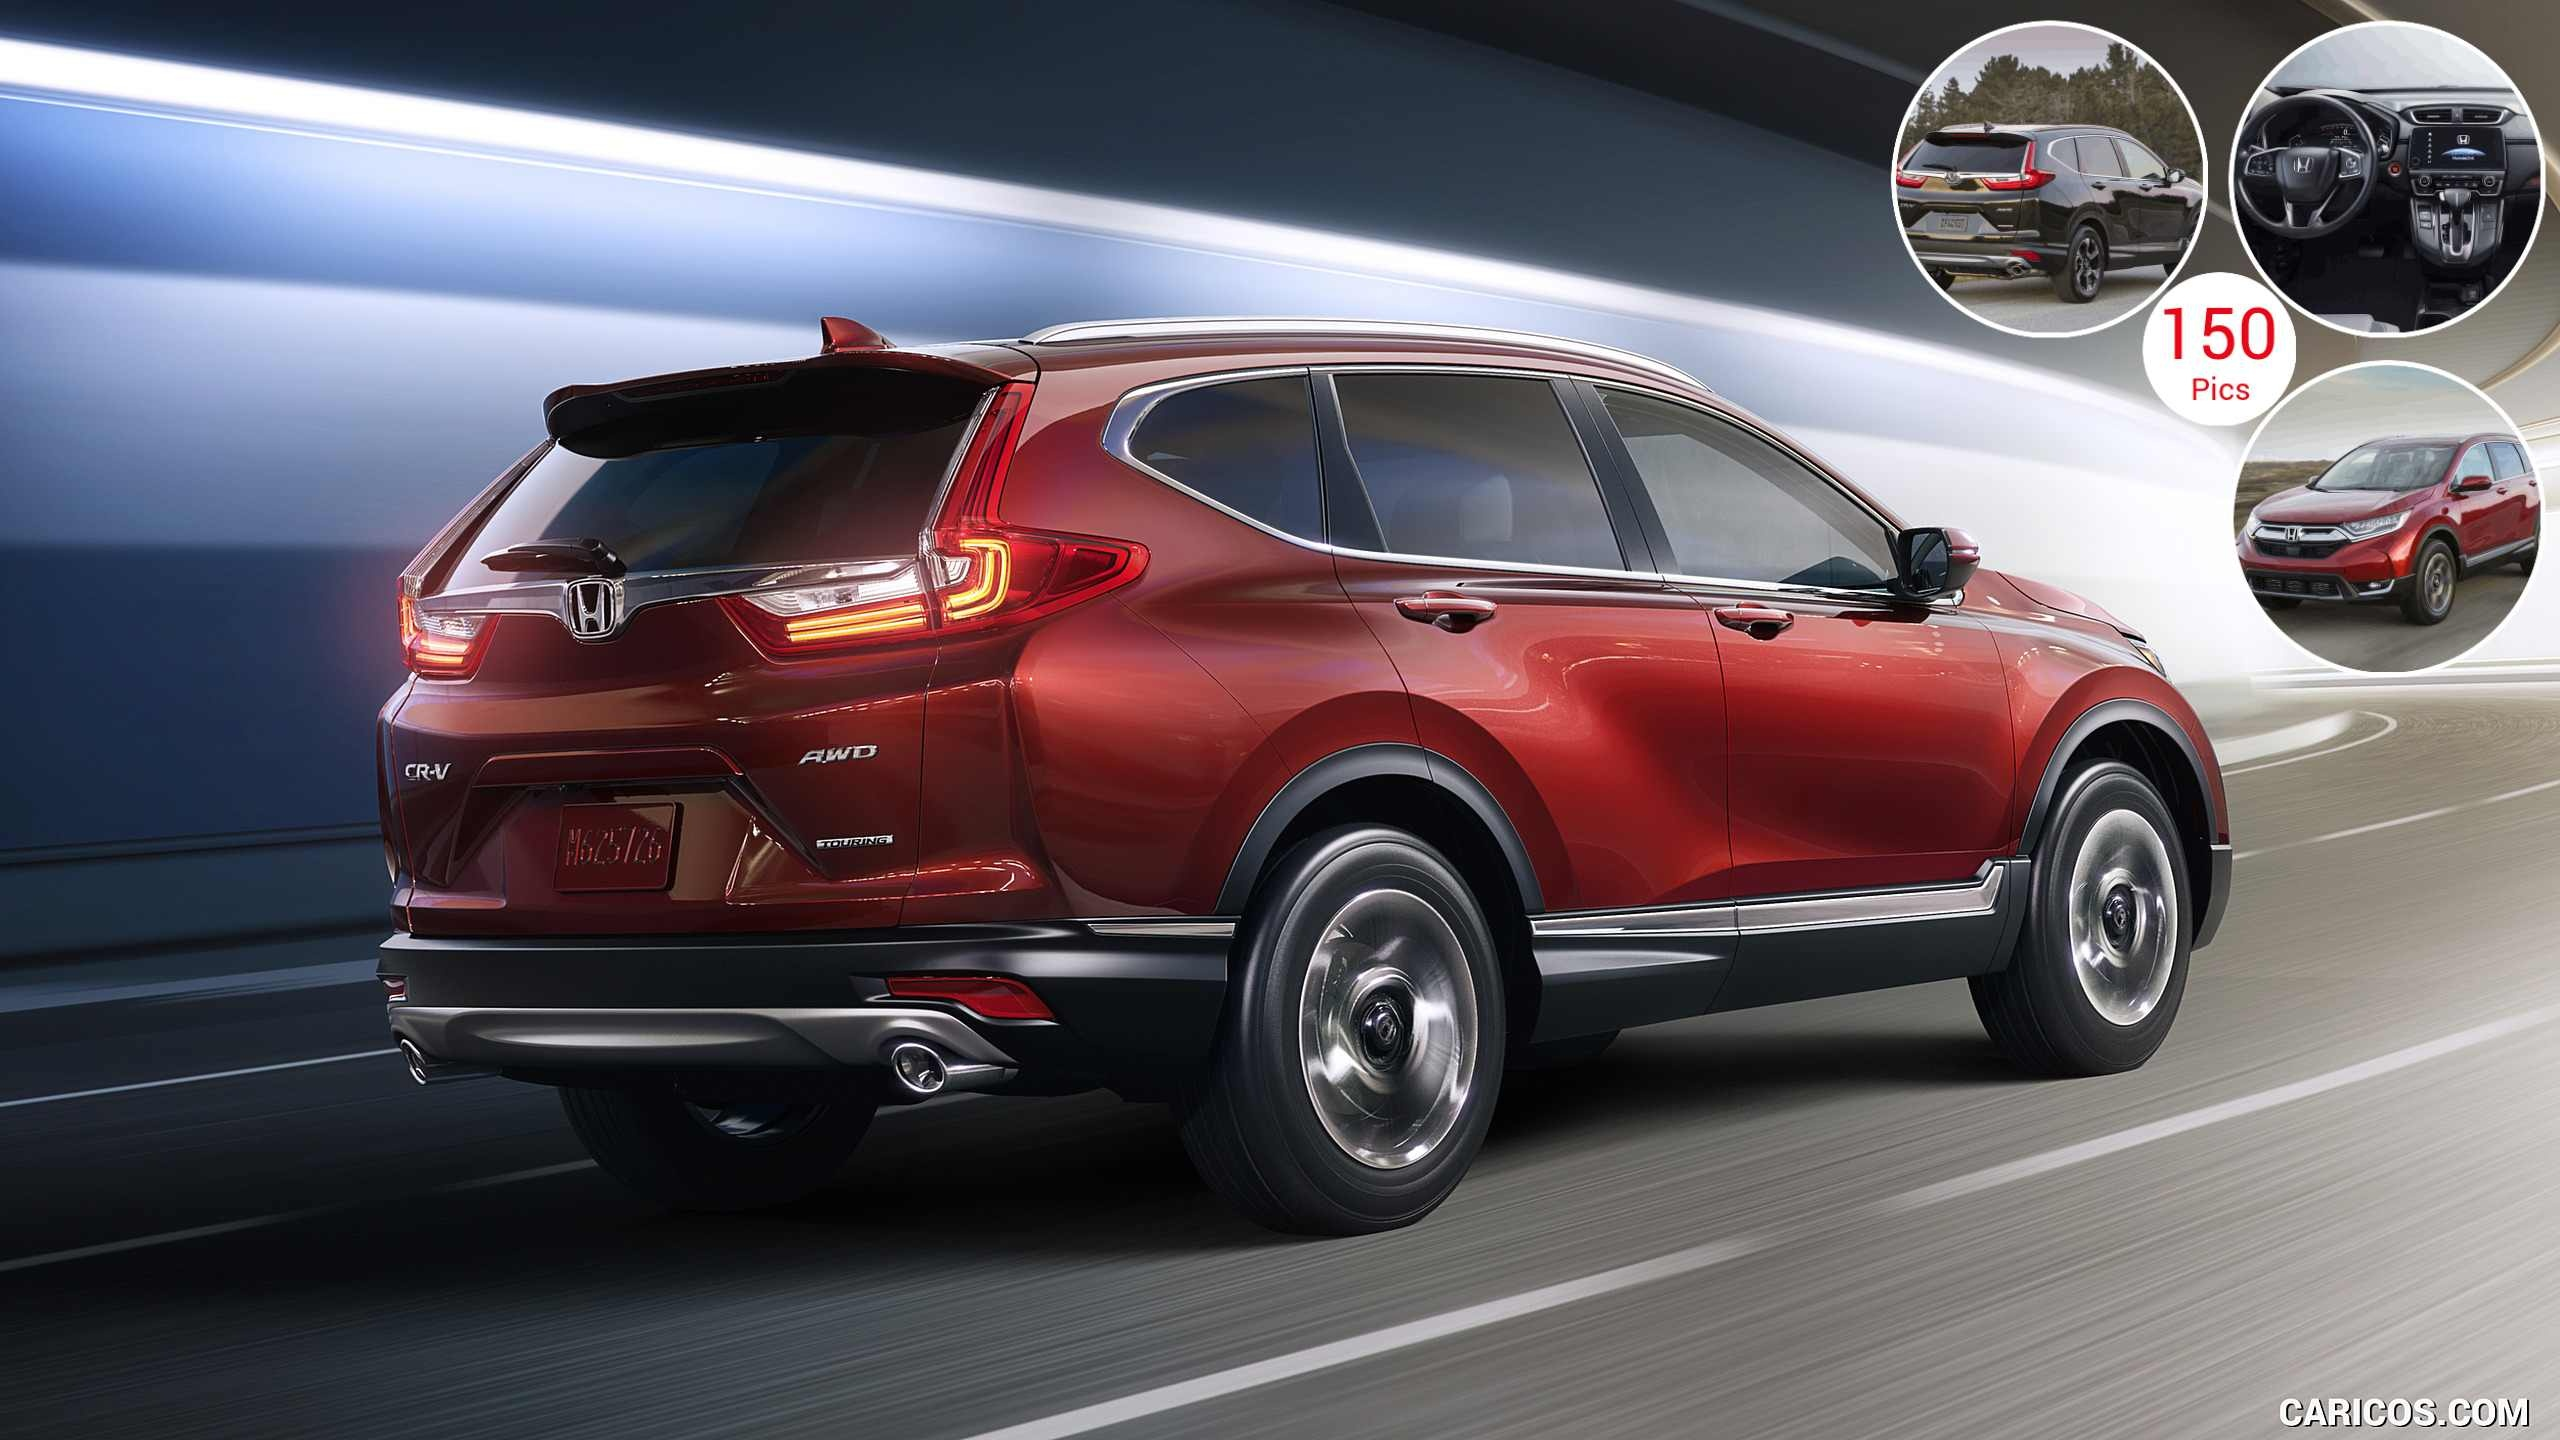 Honda Crv Wallpaper Beautiful 2017 Honda Cr V Rear Three Quarter Hd Wallpaper 2-810 Of Inspirational Honda Crv Wallpaper-810